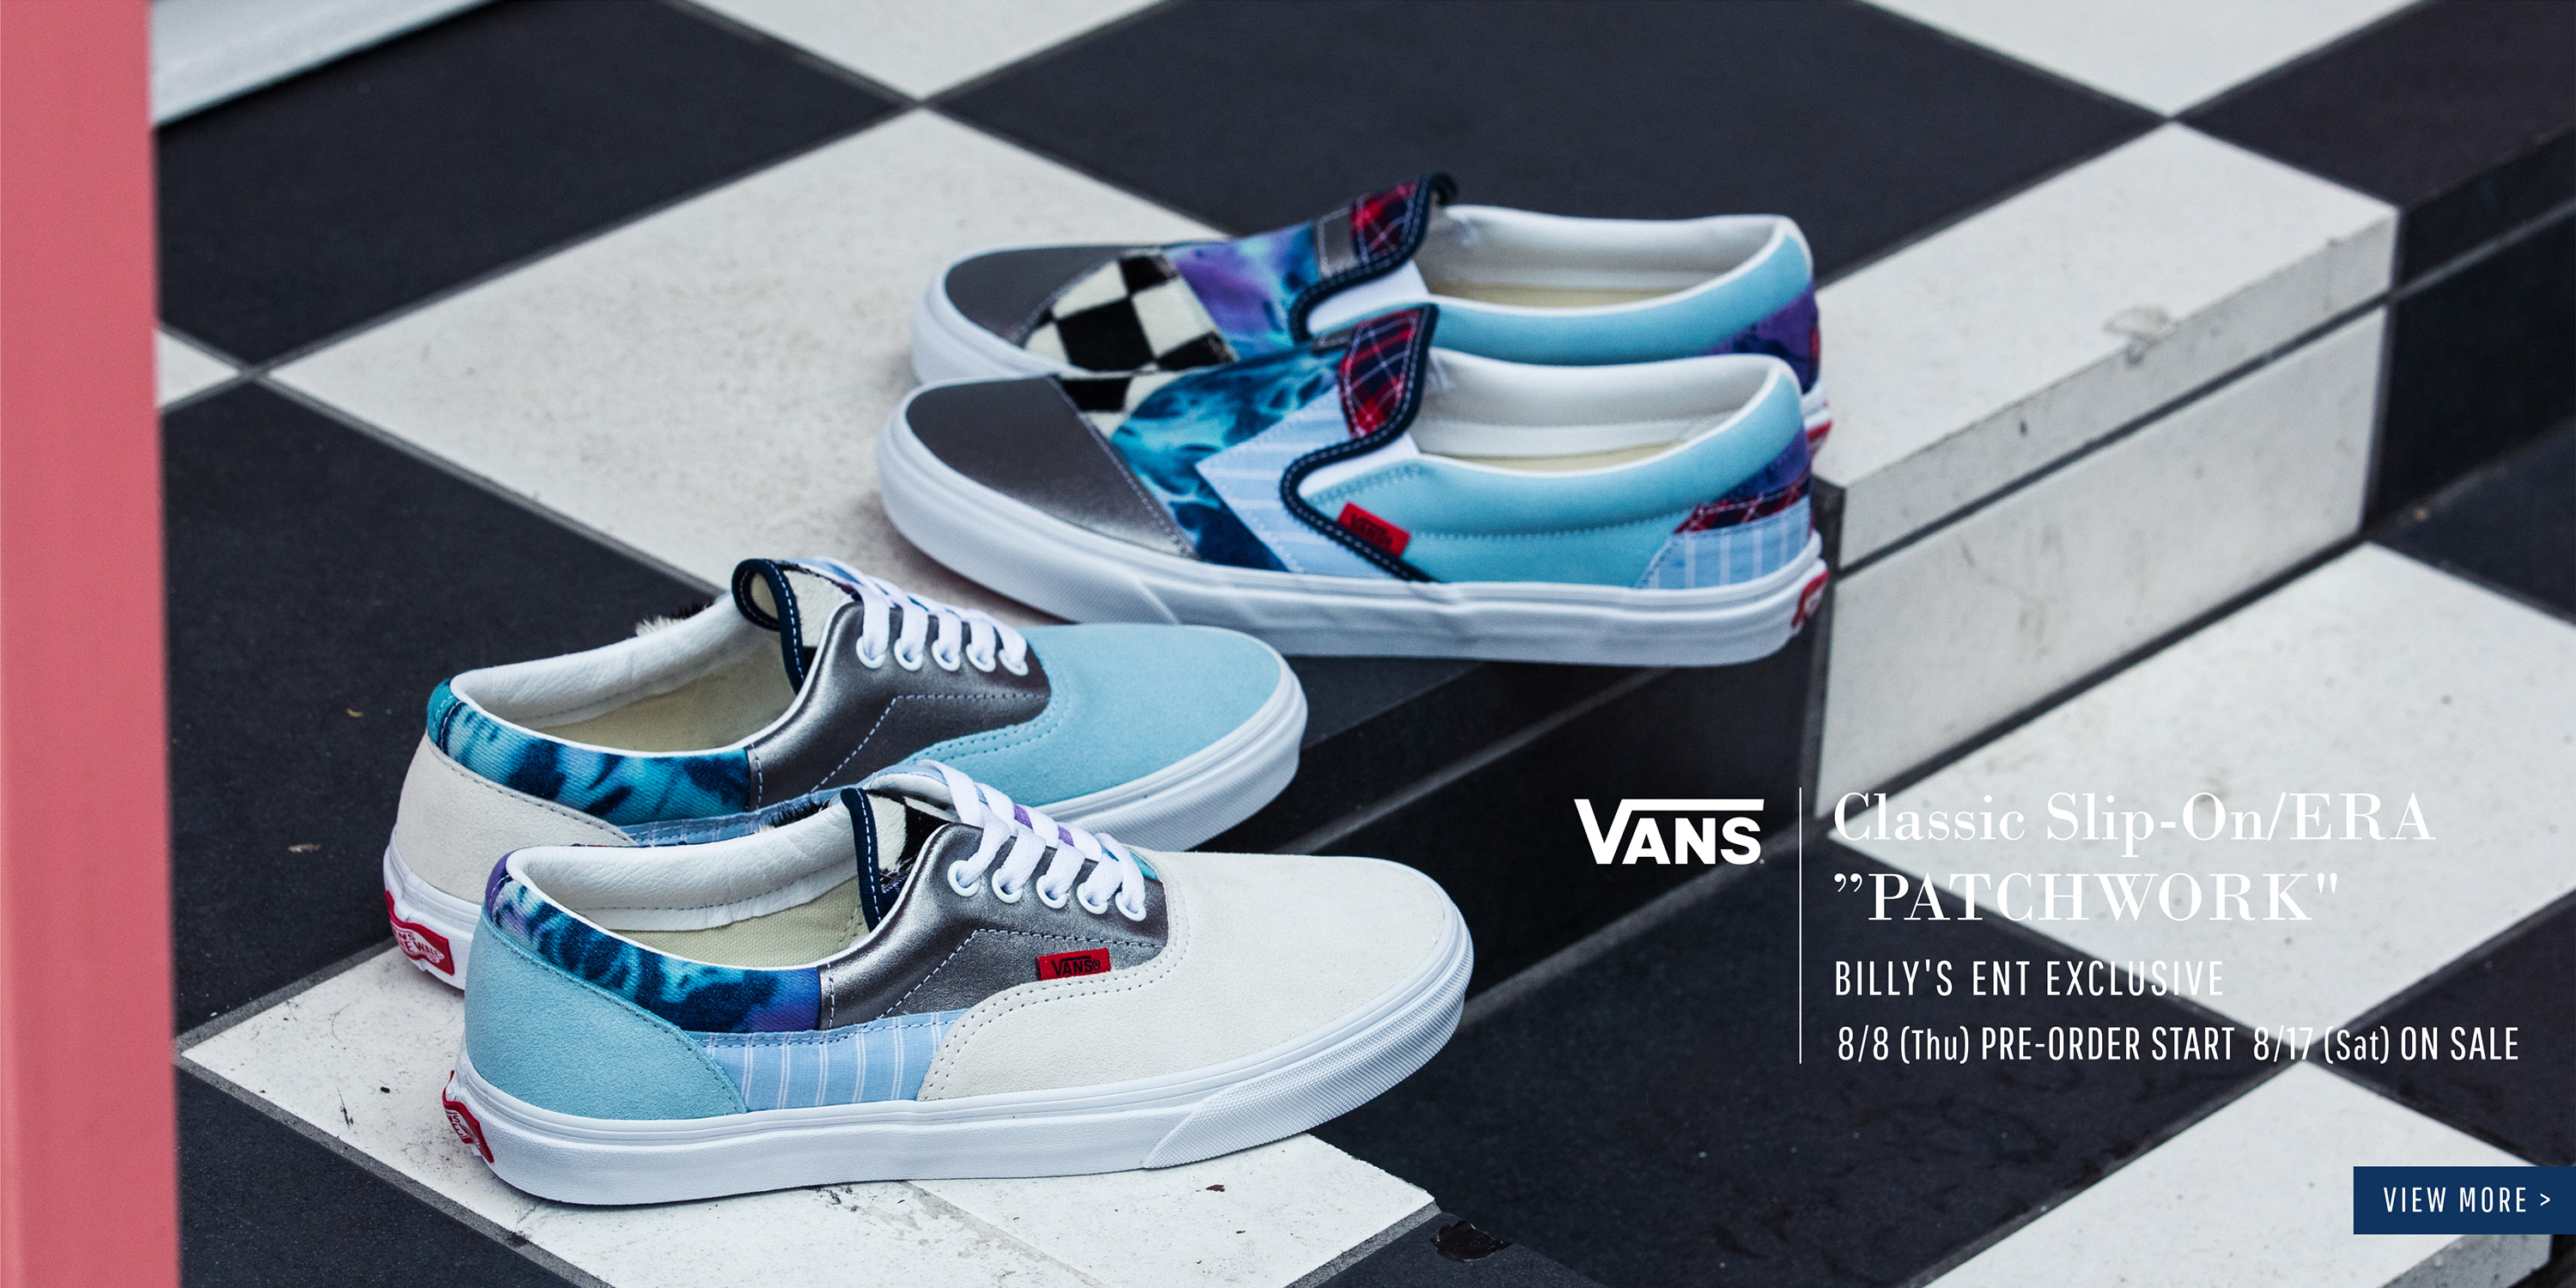 "VANS Classic Slip-On/ERA ""PATCHWORK"""